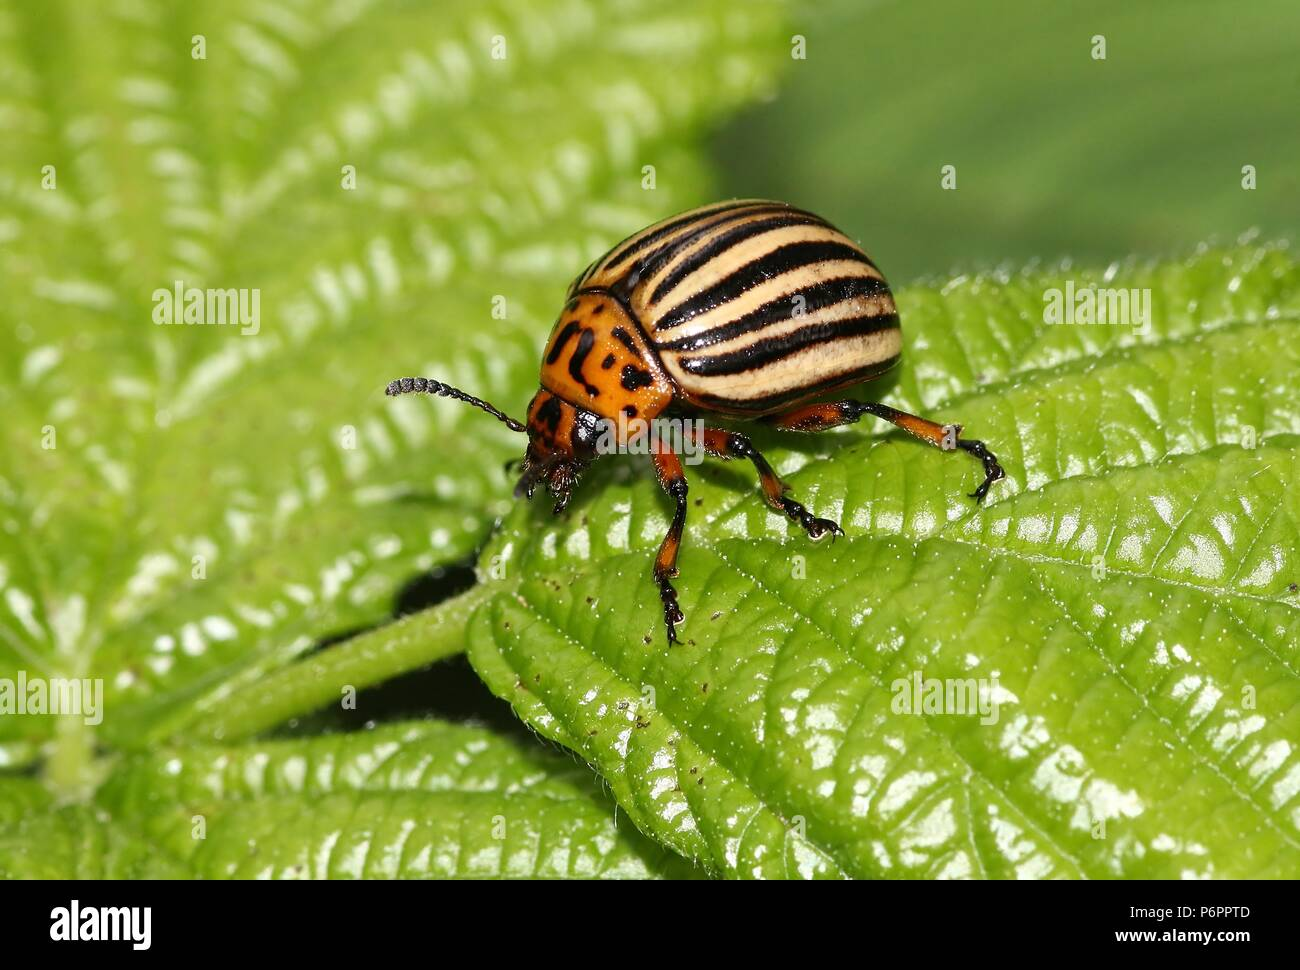 Colorado potato beetle (Leptinotarsa decemlineata) a harmful invasive species in Europe - Stock Image